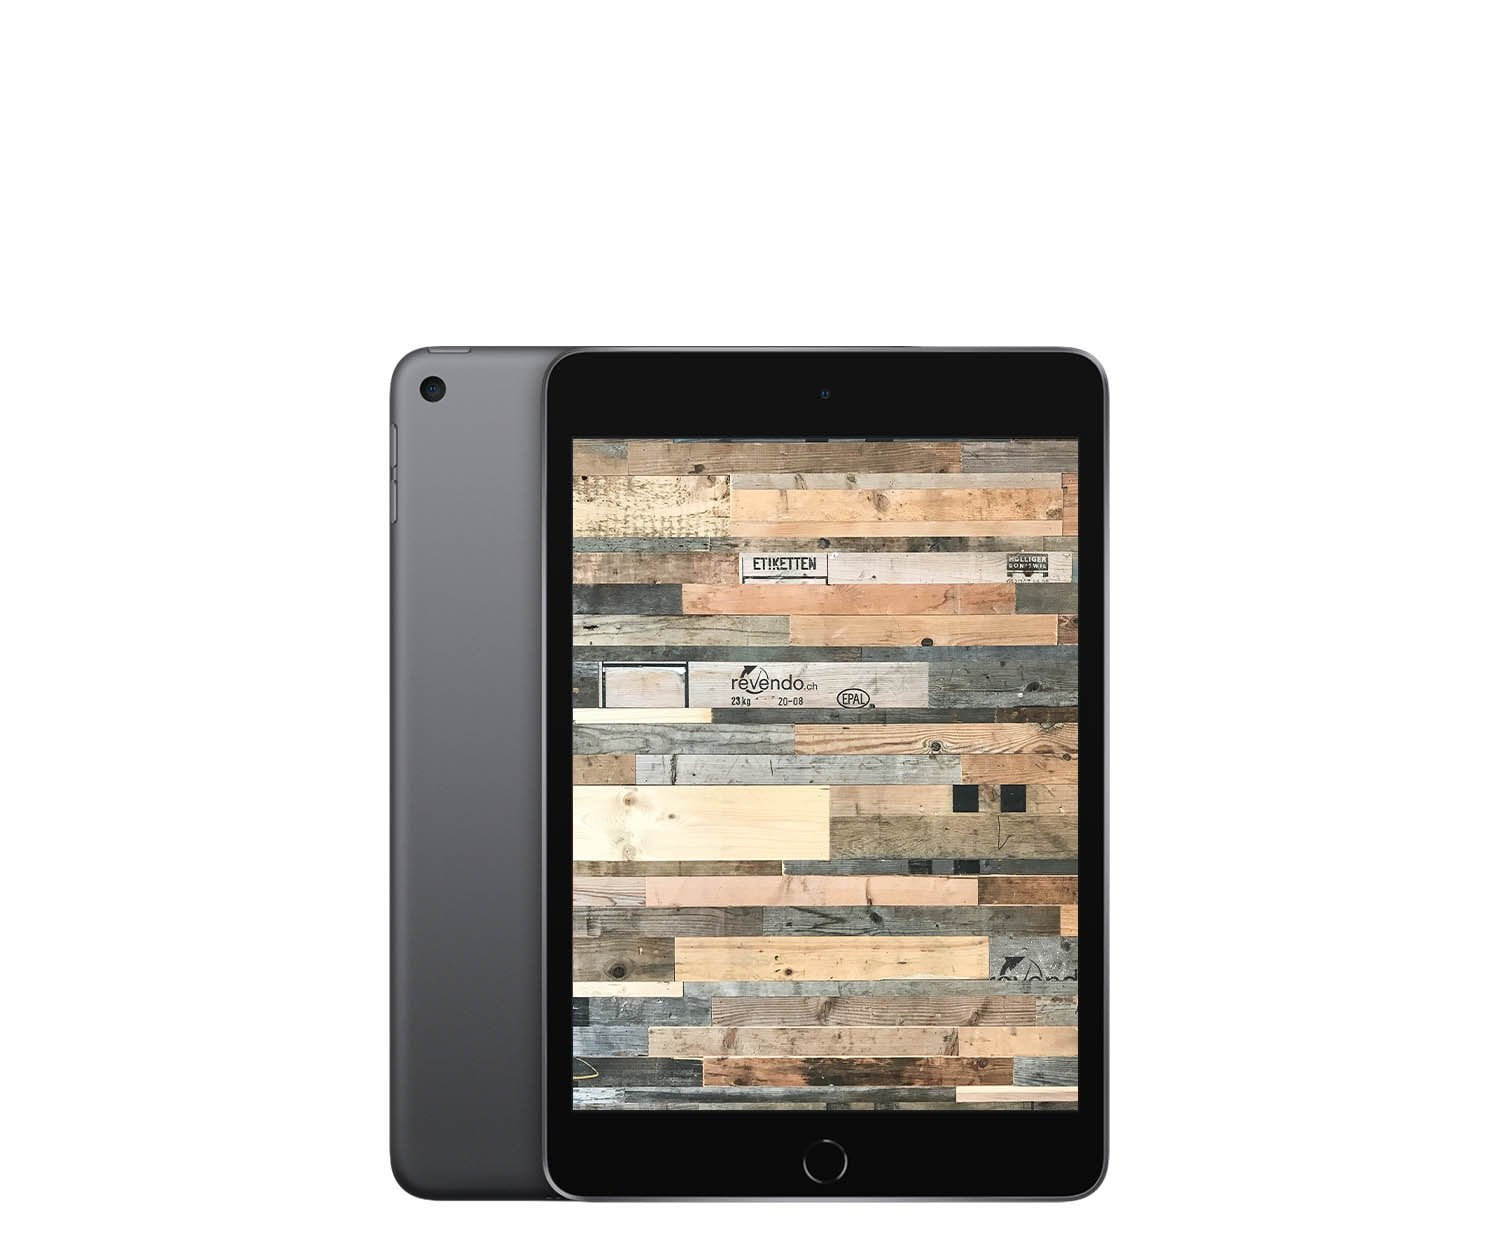 apple ipad mini 2019 64 gb wi fi. Black Bedroom Furniture Sets. Home Design Ideas